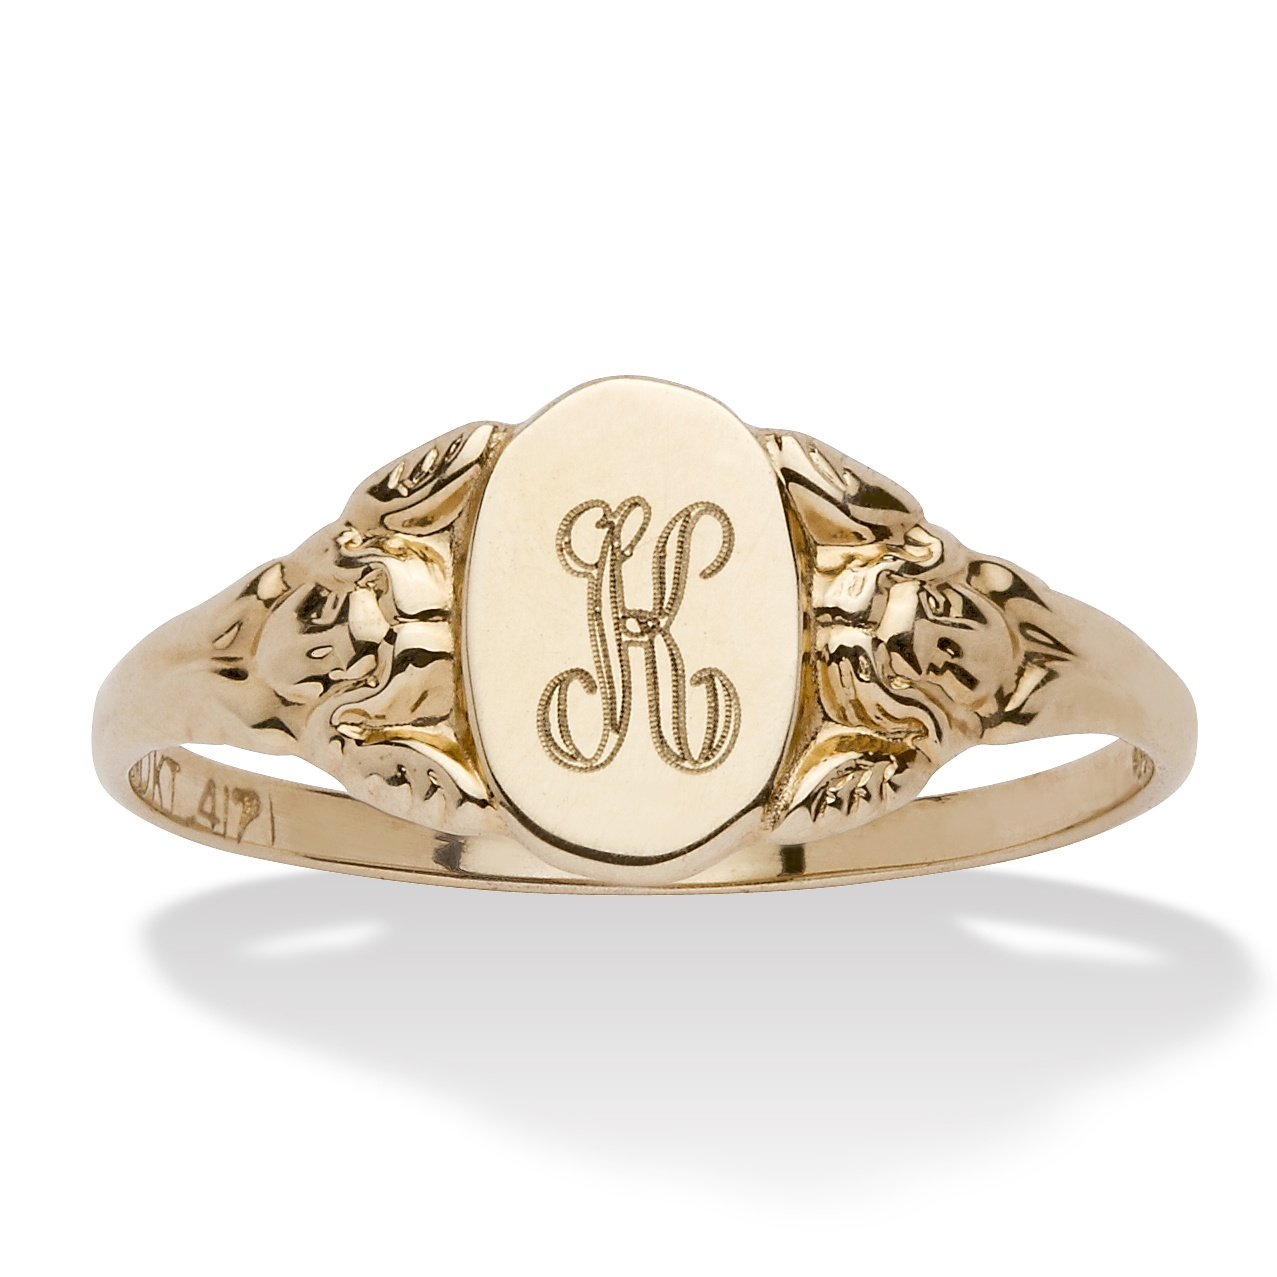 Personalized Signet Initial Ring In Solid 10k Yellow Gold. Metal Clay Rings. 4 Carat Diamond Engagement Rings. Queen Engagement Rings. Women's Engagement Ring Wedding Rings. Valentine's Day Engagement Rings. Lock Rings. Sqaure Engagement Rings. Vvs Diamond Engagement Rings